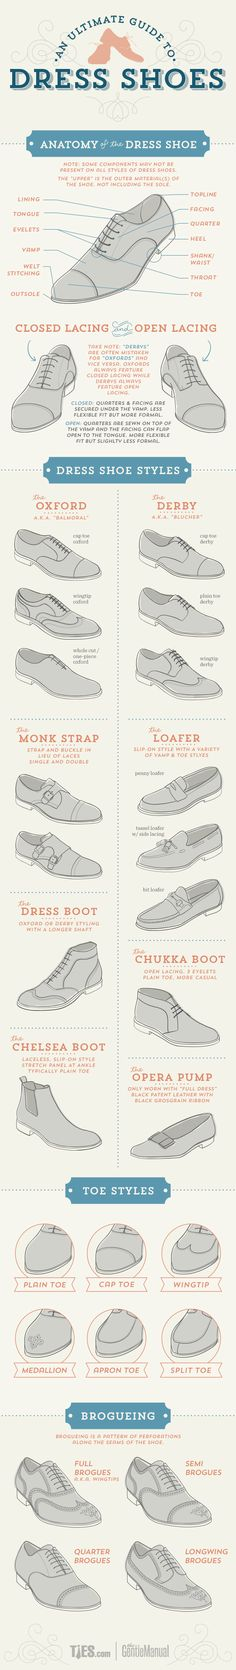 An Ultimate Guide To Dress Shoes #infographic #dressshoes #menstyle #RMRS